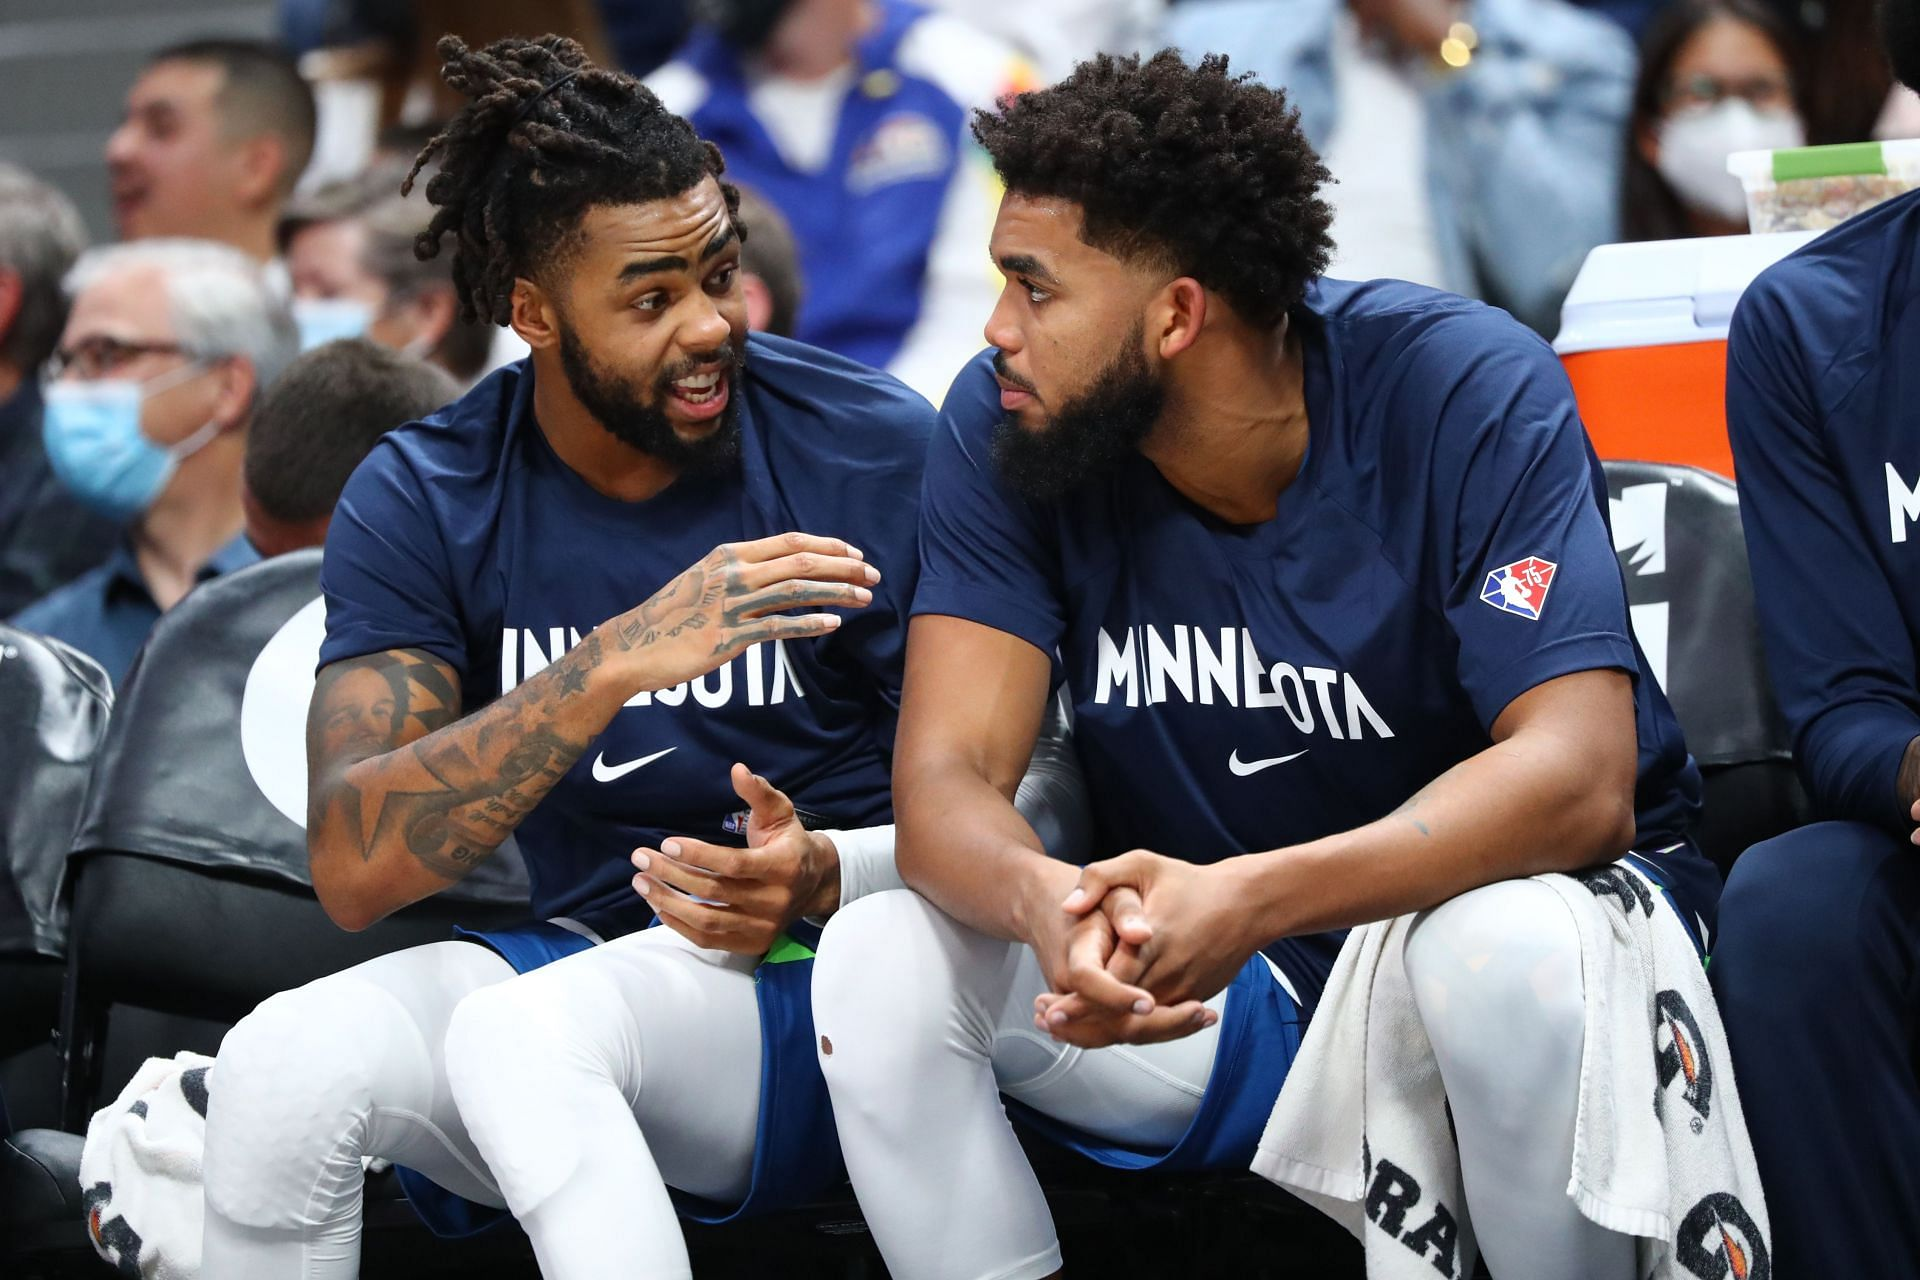 The Minnesota Timberwolves in a game against the Denver Nuggets